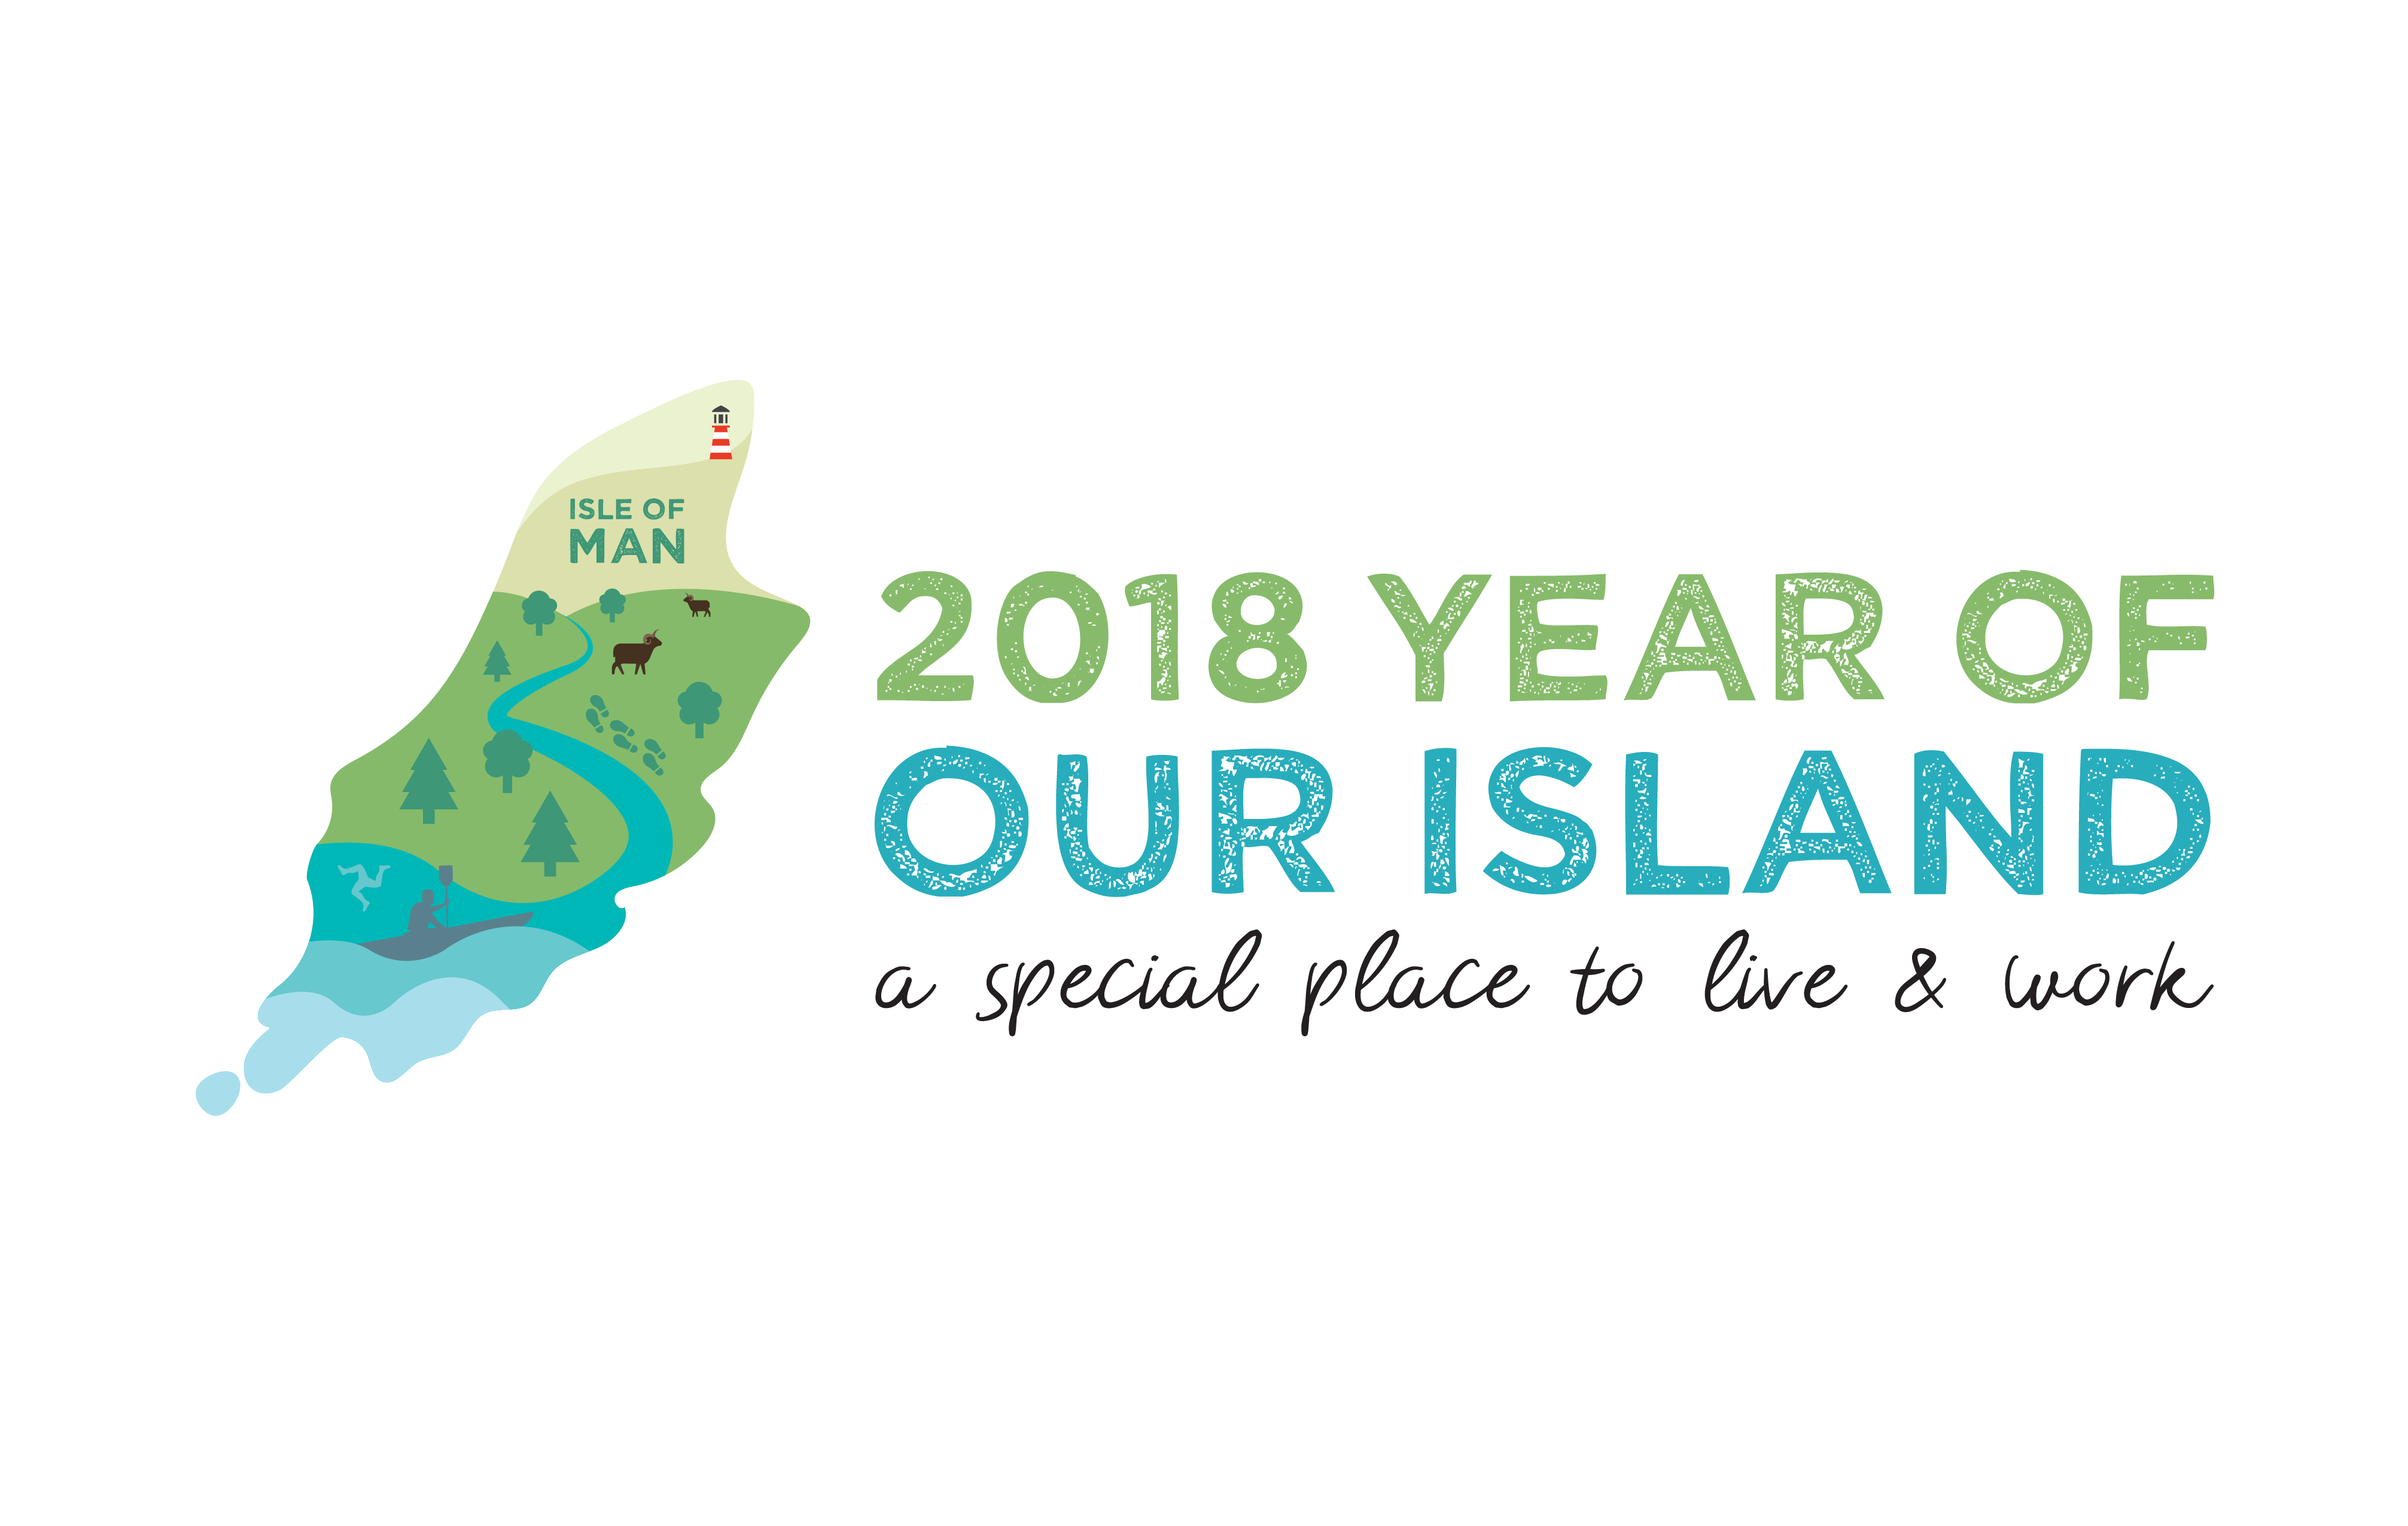 2018 Year of our Island